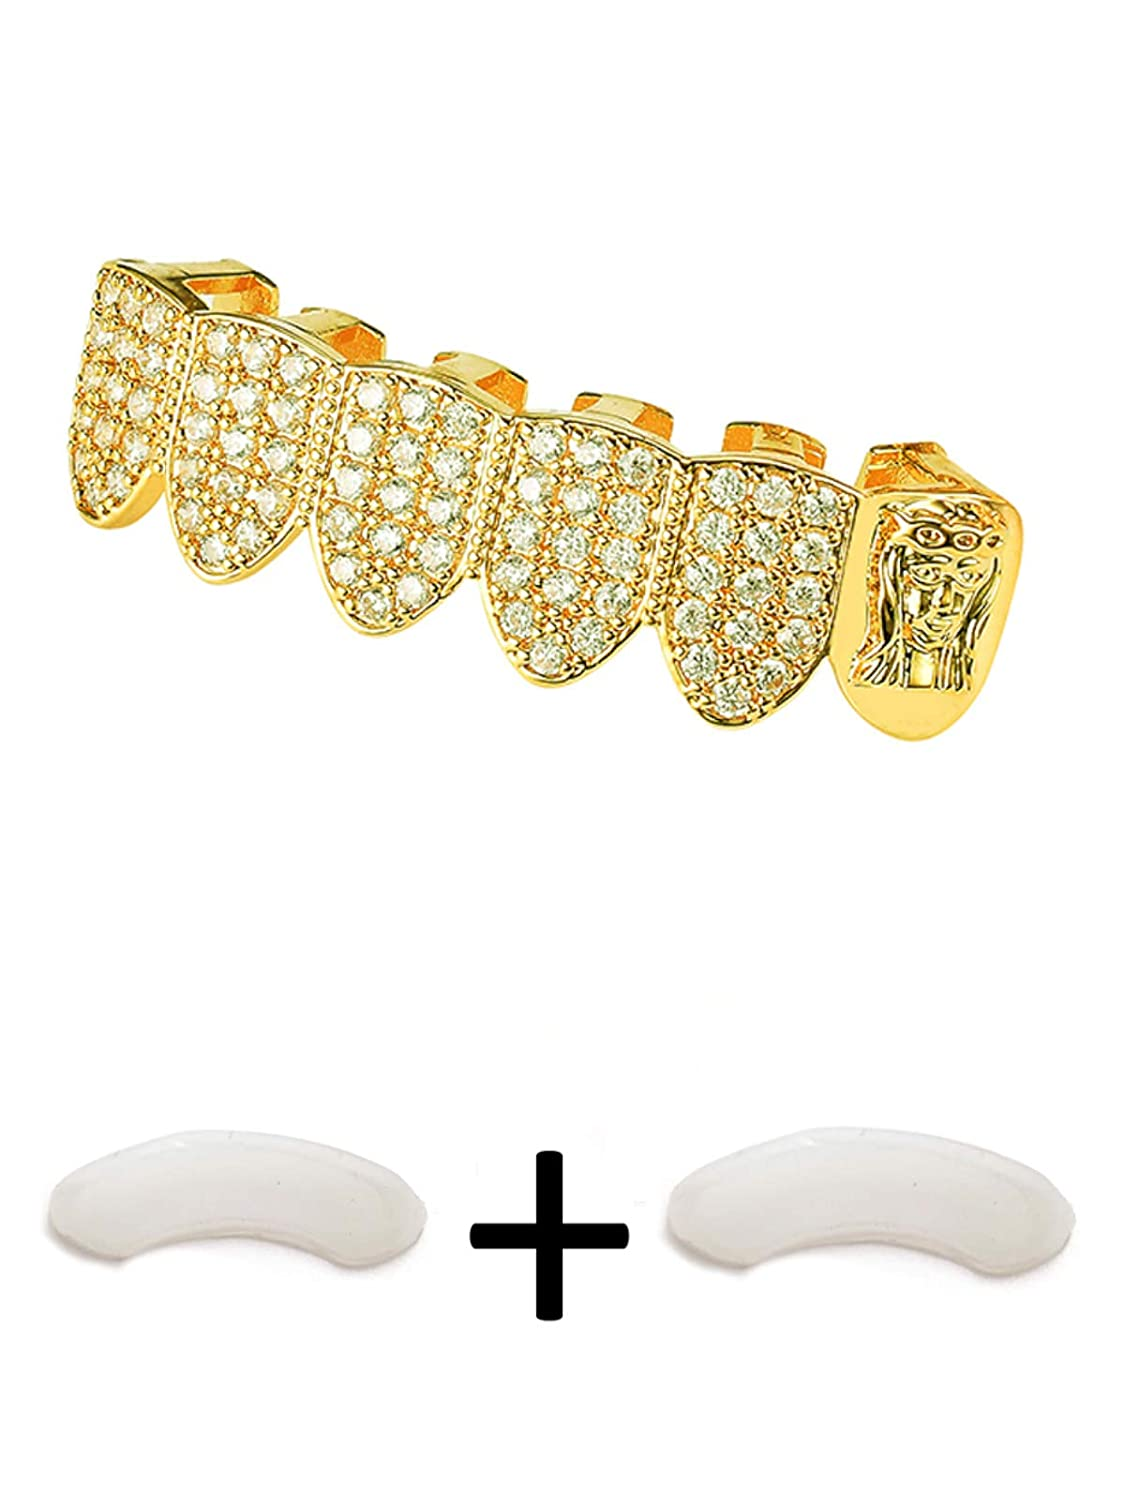 TSANLY Gold Grillz Bottom Jesus Head Iced Out CZ Diamond 24K Kid Grill Christ Portrait Rapper Grills Gift Charly Shop